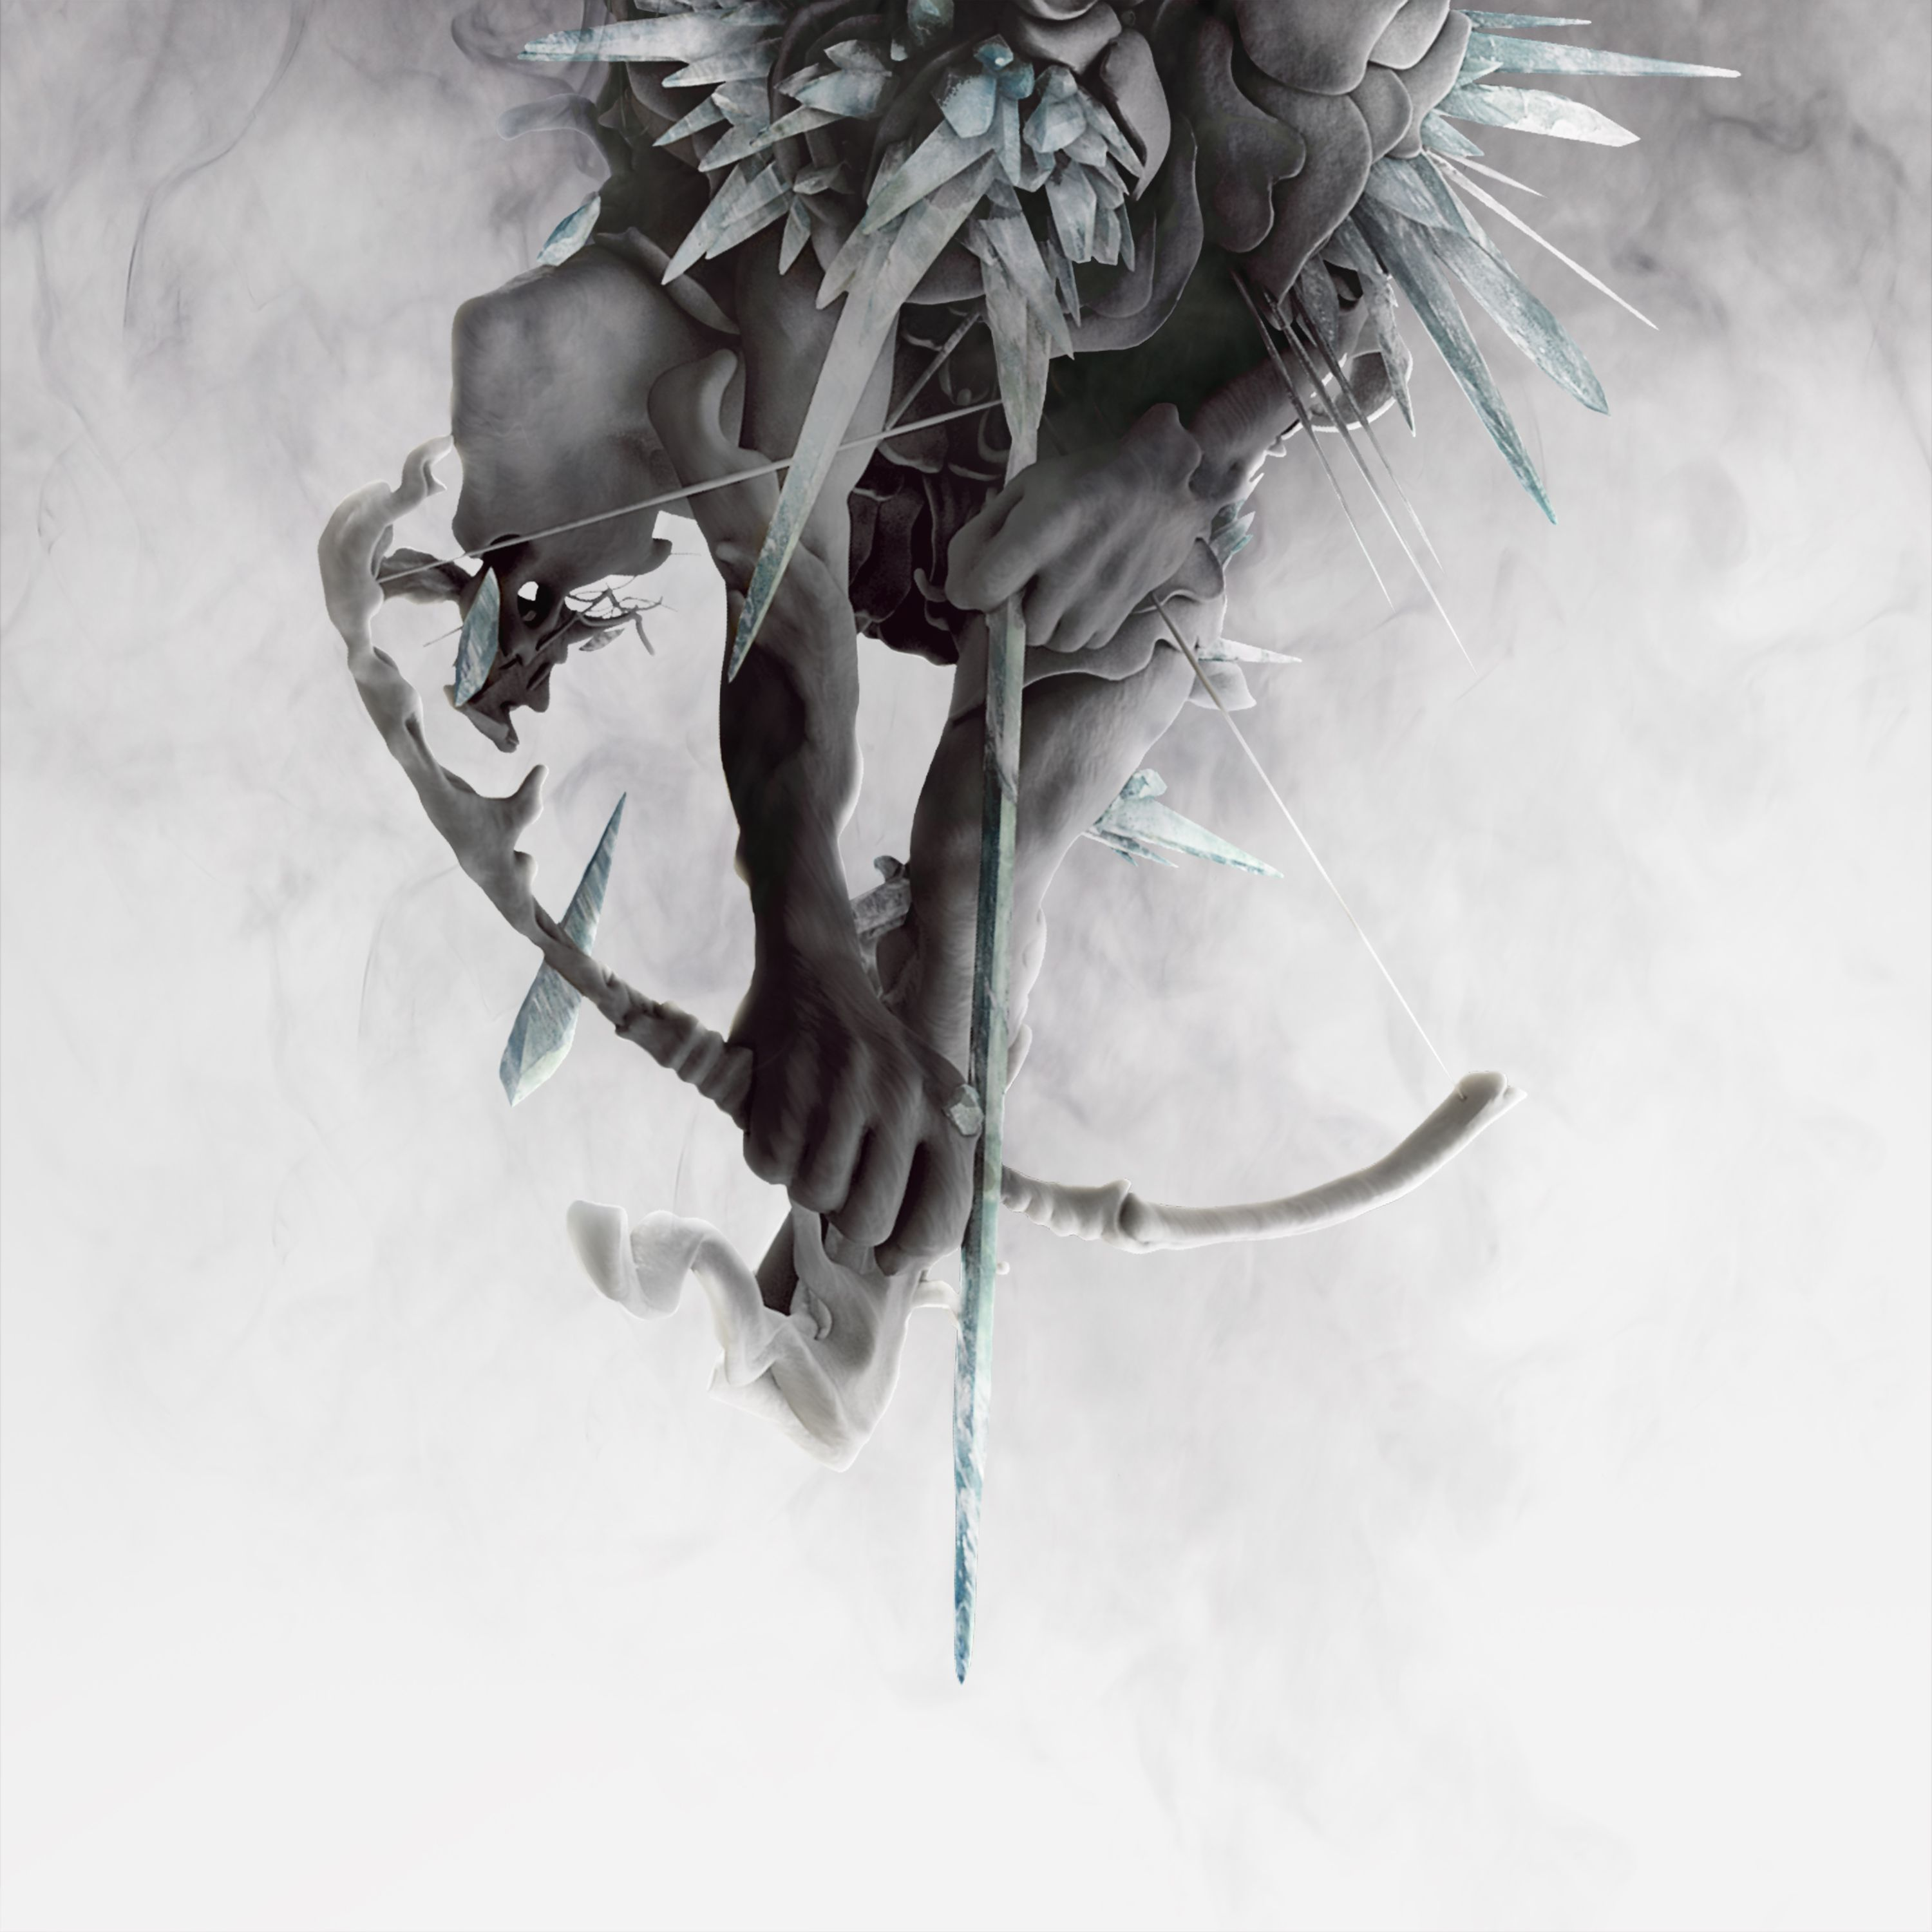 Linkin Park - The Hunting Party album cover